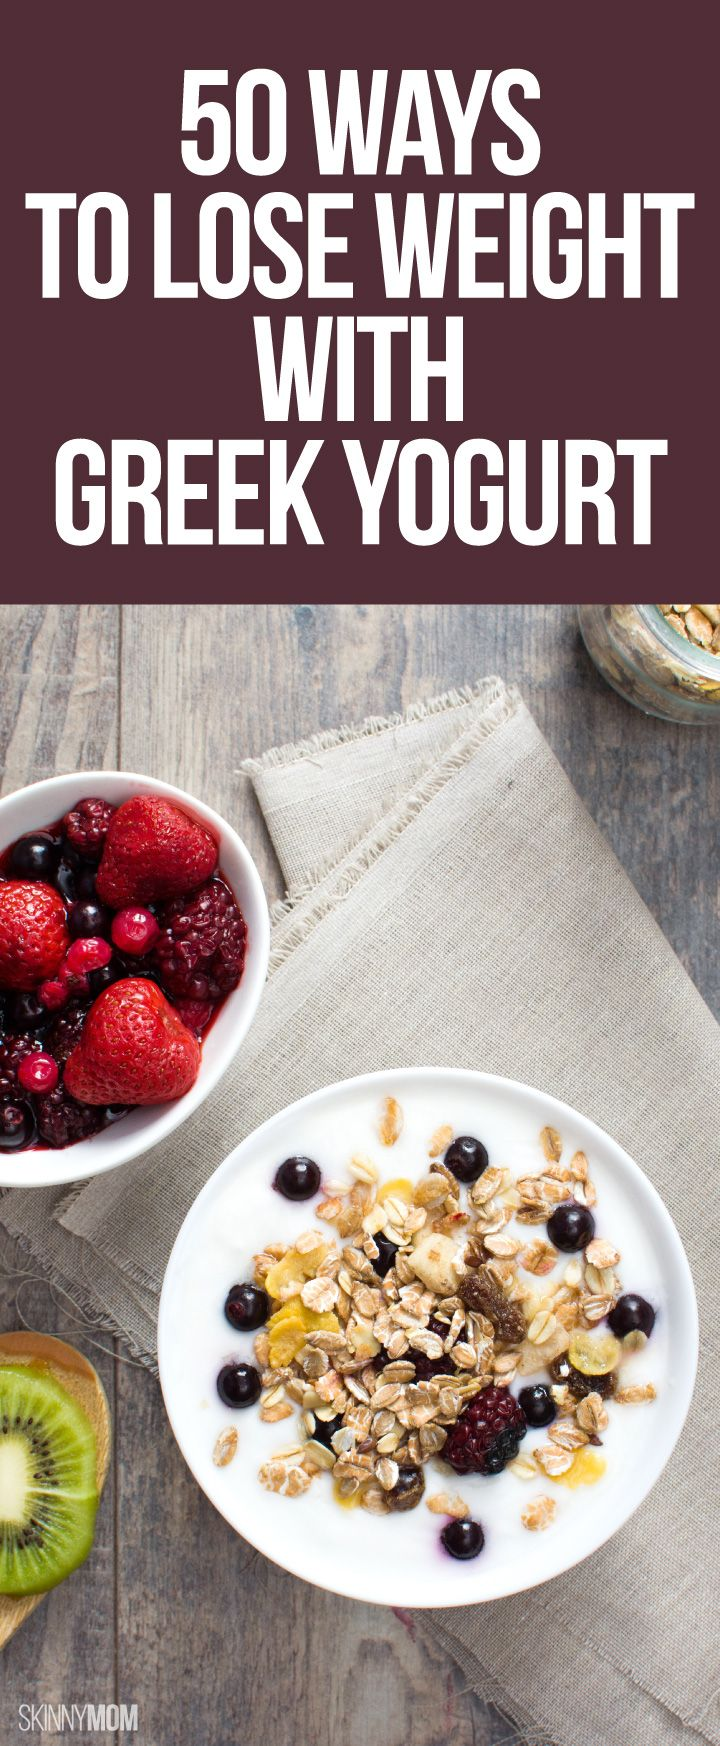 Want to lose weight? Try these amazing uses for Greek yogurt!